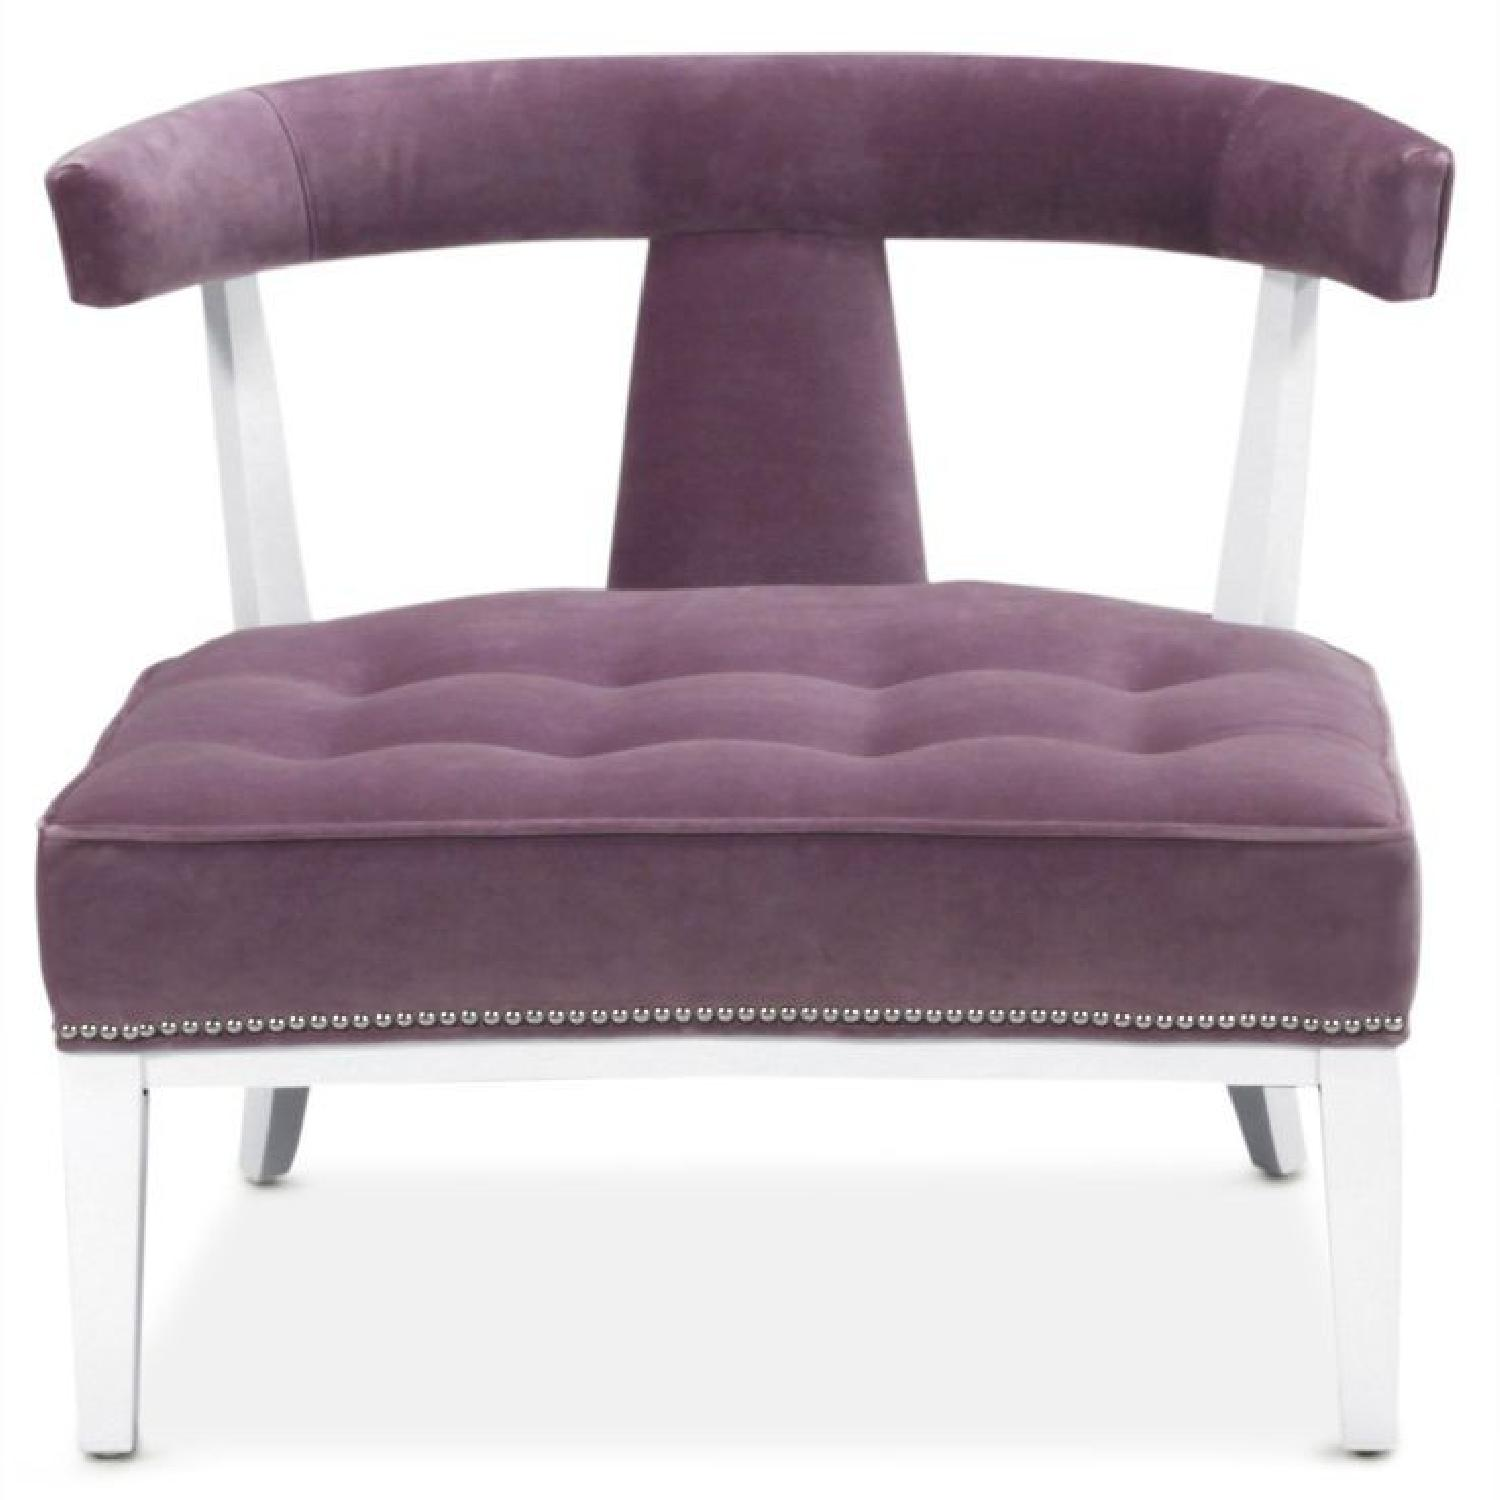 Jonathan Adler Addison Chair - image-0